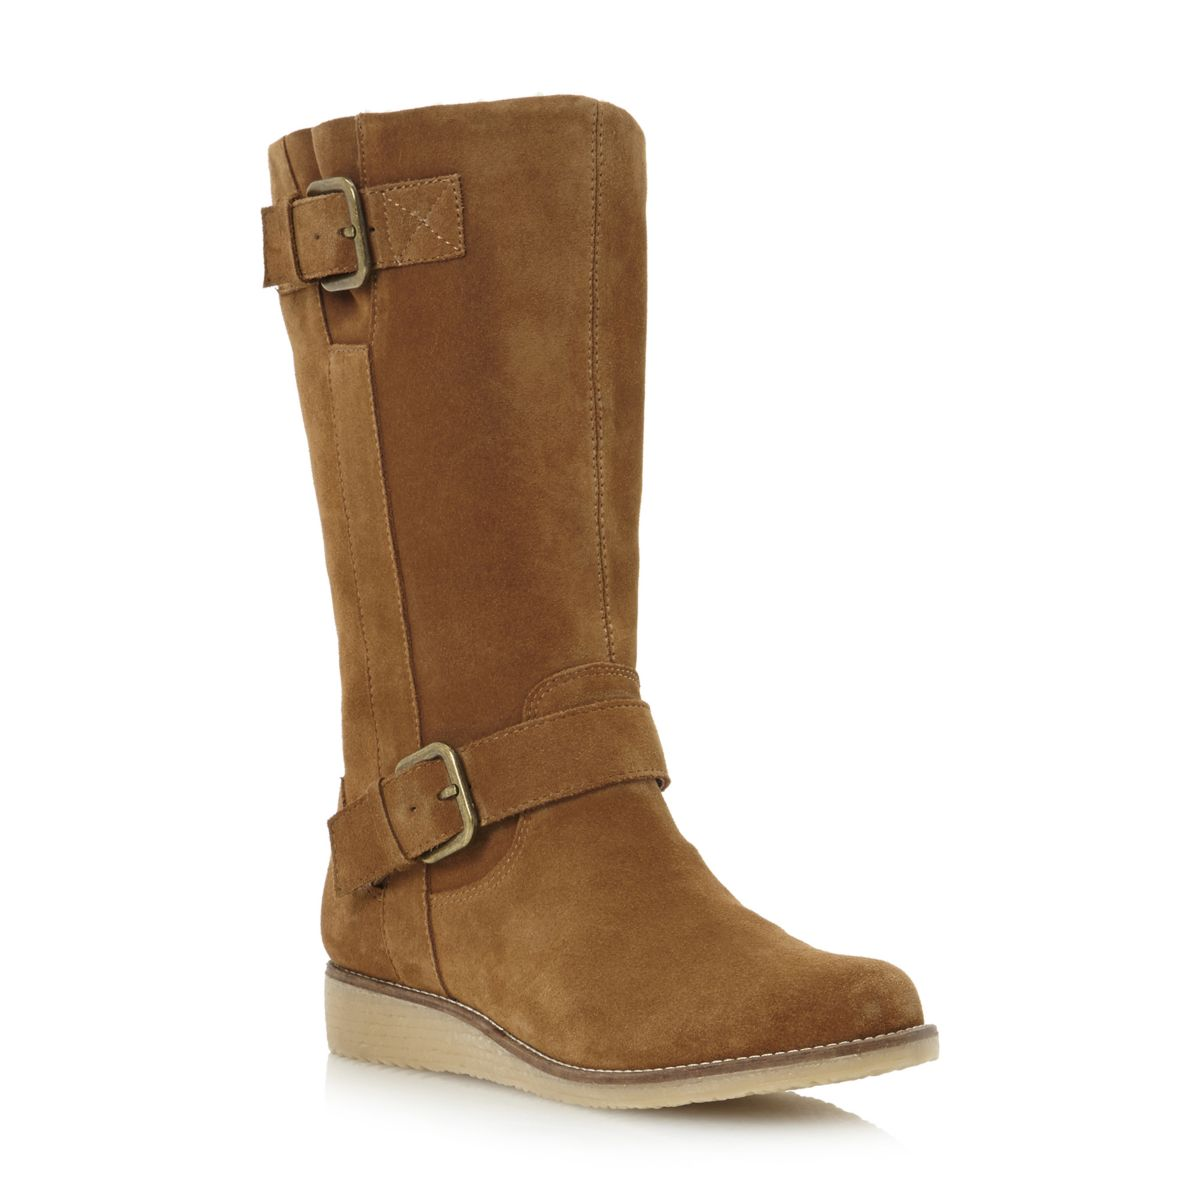 Flat Boots Introduction. Flat boots designed for modern women are fashionable as well as highly comfortable. Fringe flat boots are available at hefty discounts. suede flat boots gray flat boots brown flat leather boots flat black boots flat leather boots grey flat boots flat brown boots red flat boots flat grey boots.